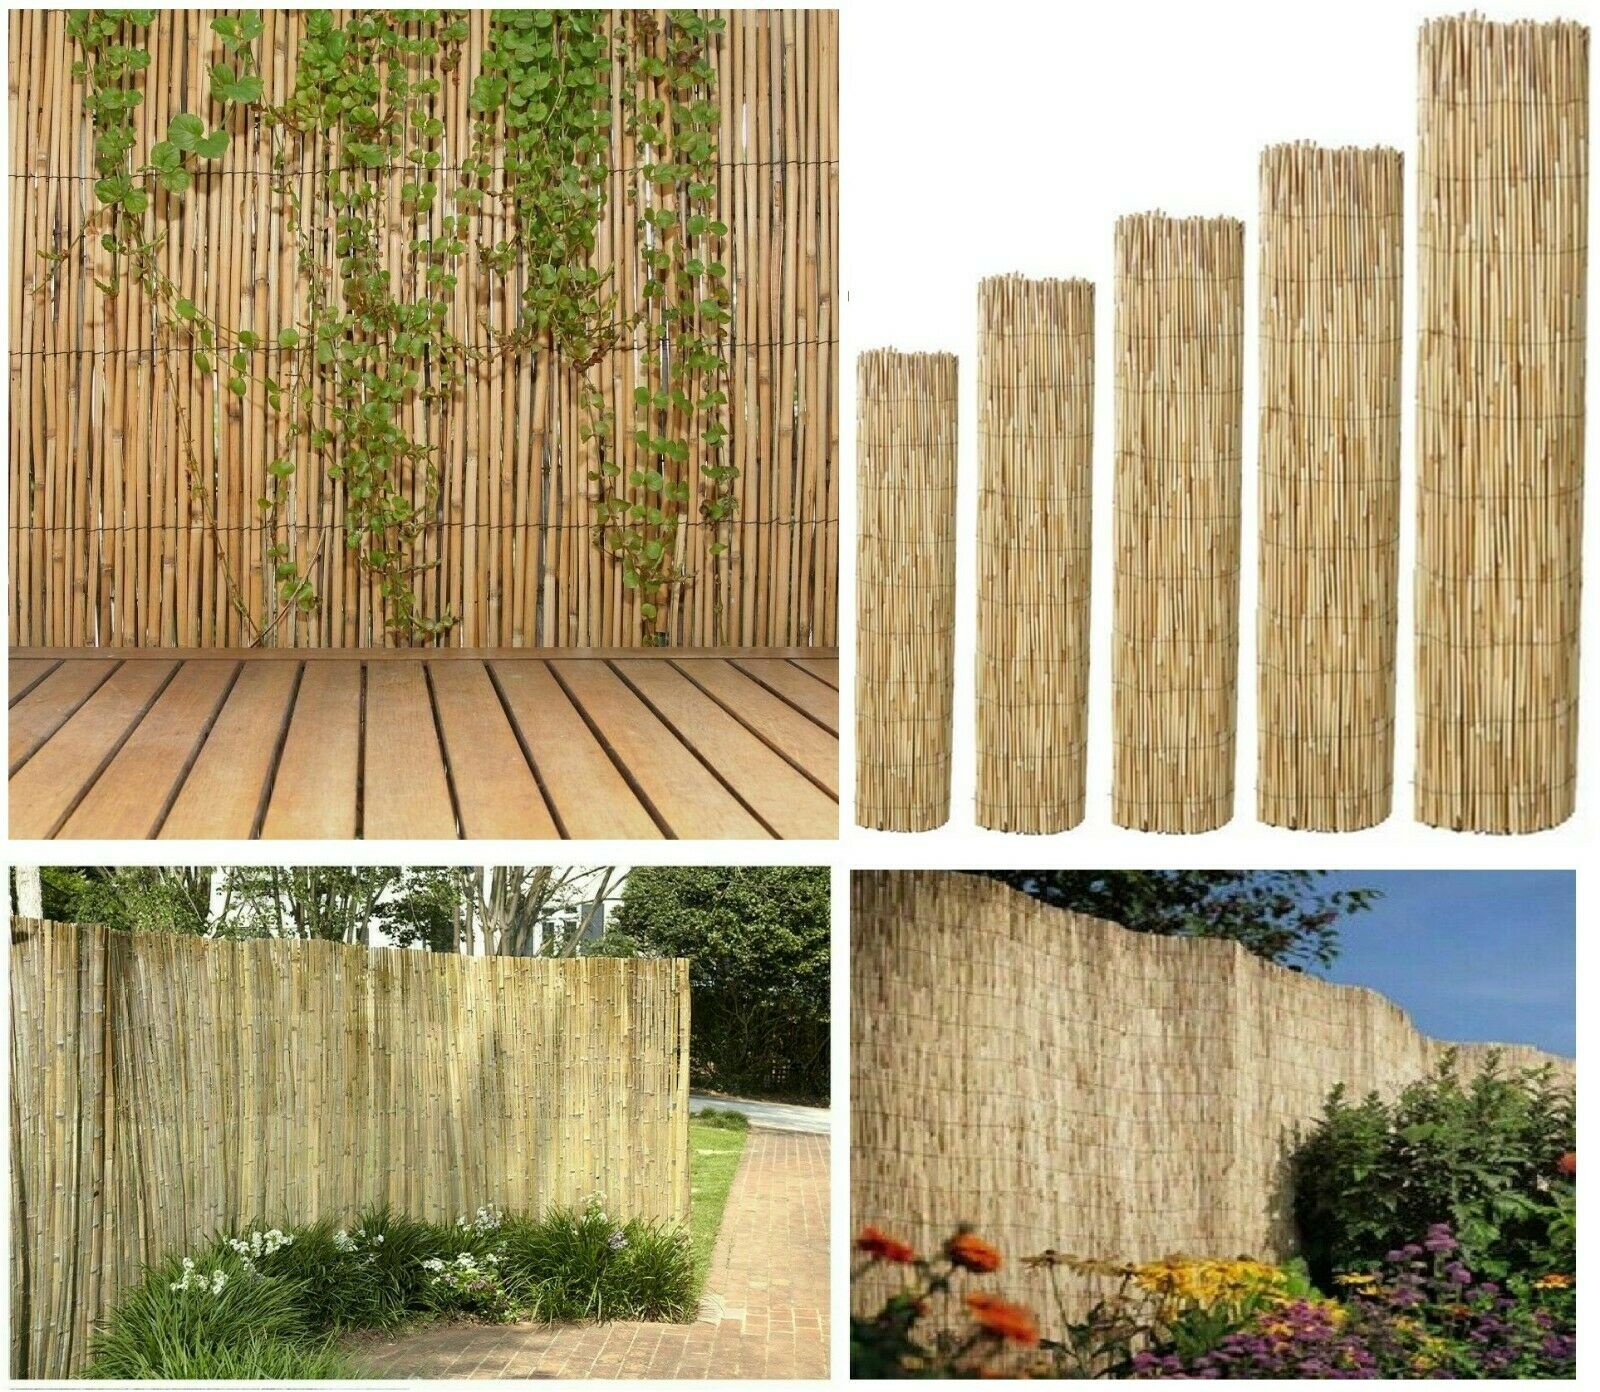 garden fence - Natural Peeled Reed Fence Screening Roll Garden Screen Fencing Panel Wooden 4m